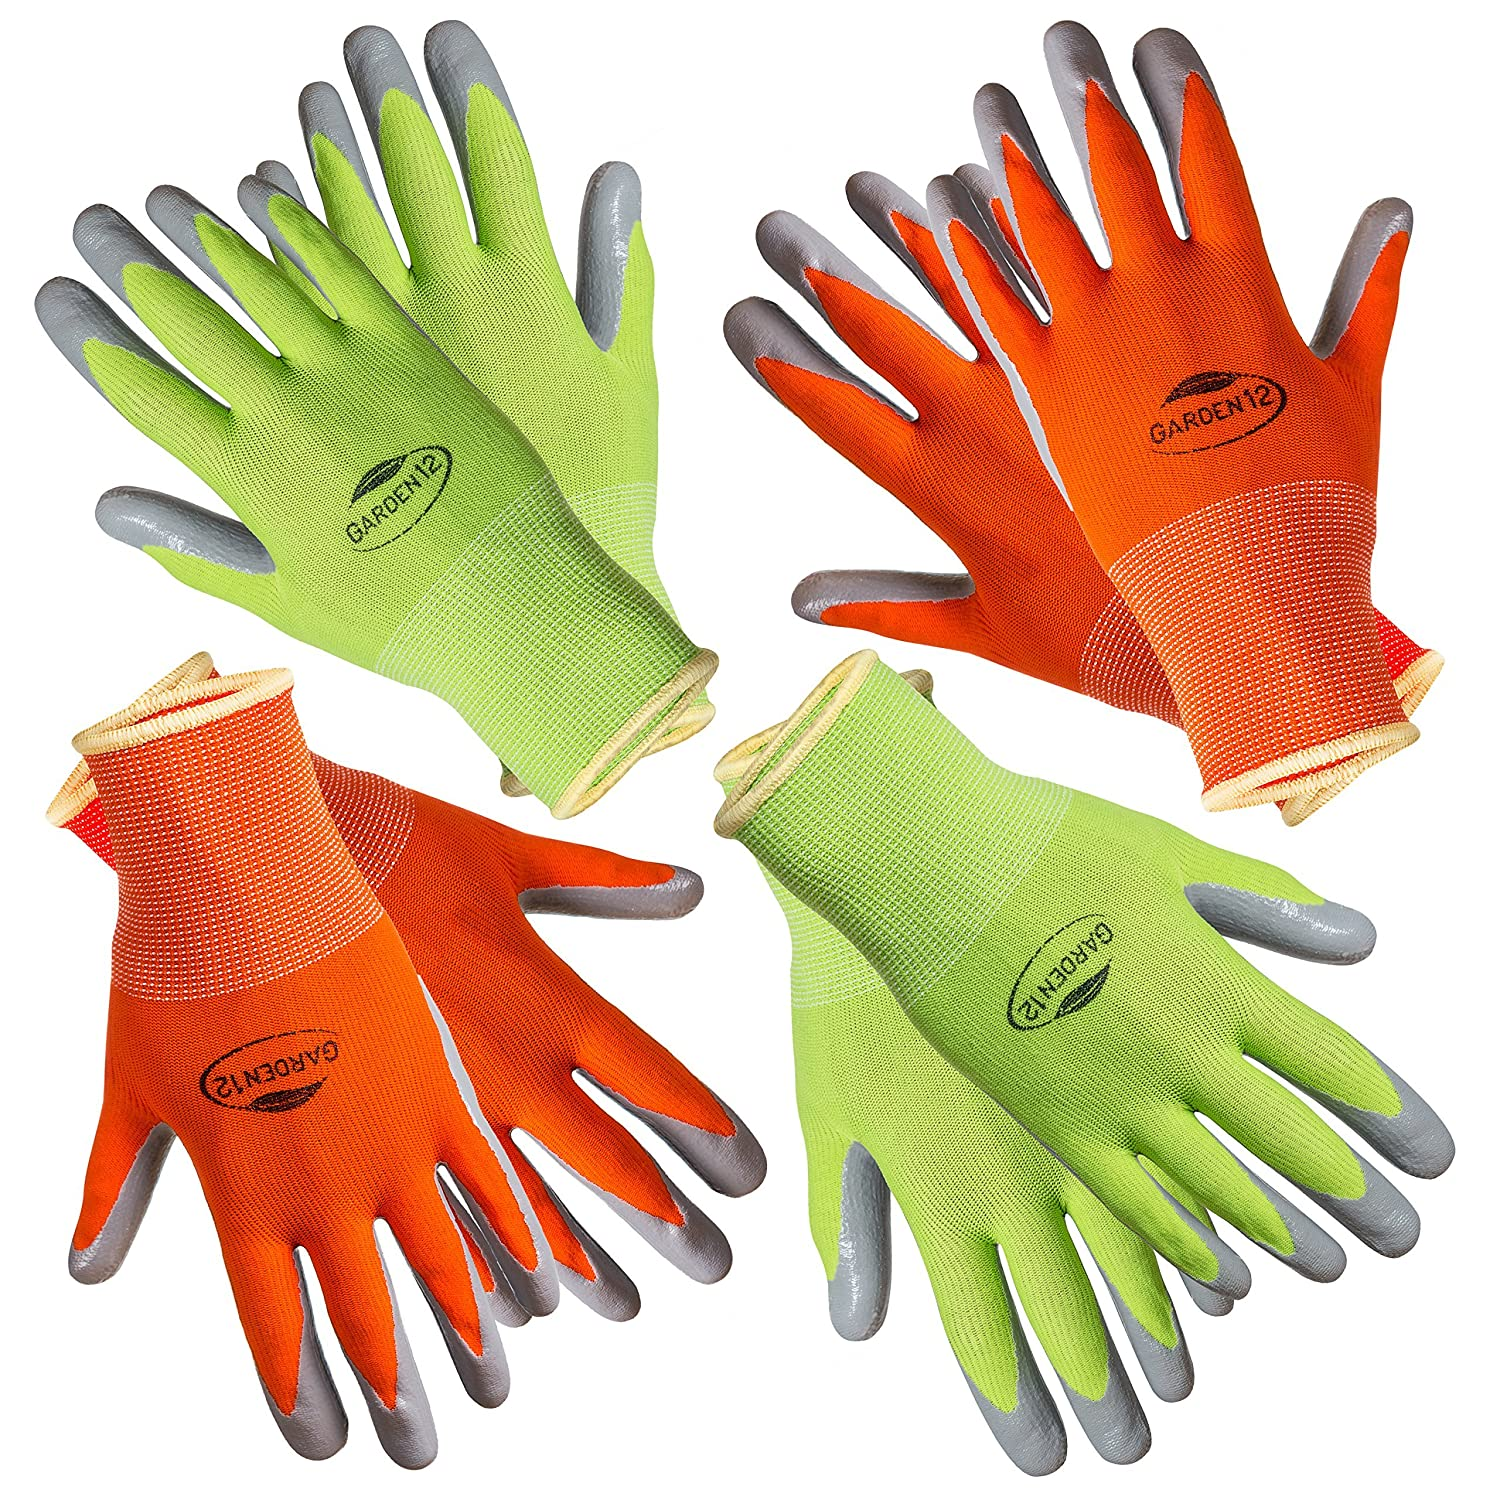 Working Gloves for Women. (4 pairs per package) Comfortable Gardening Gloves Medium Size. Breathable Nylon coated with puncture-resistant nitrile